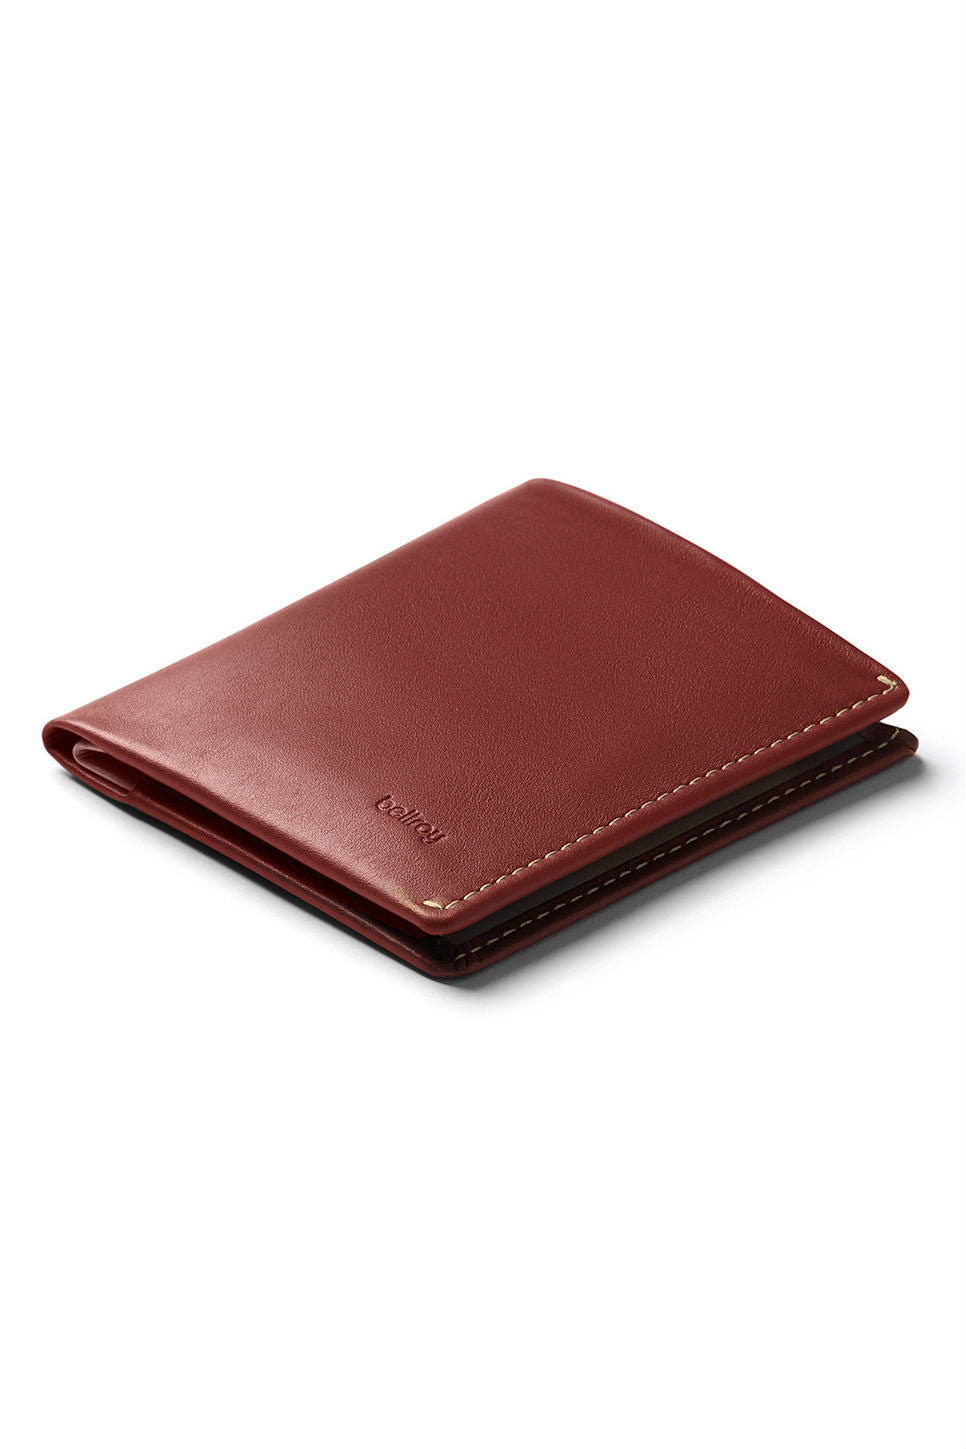 Bellroy - RFID Note Sleeve Wallet - Red Earth